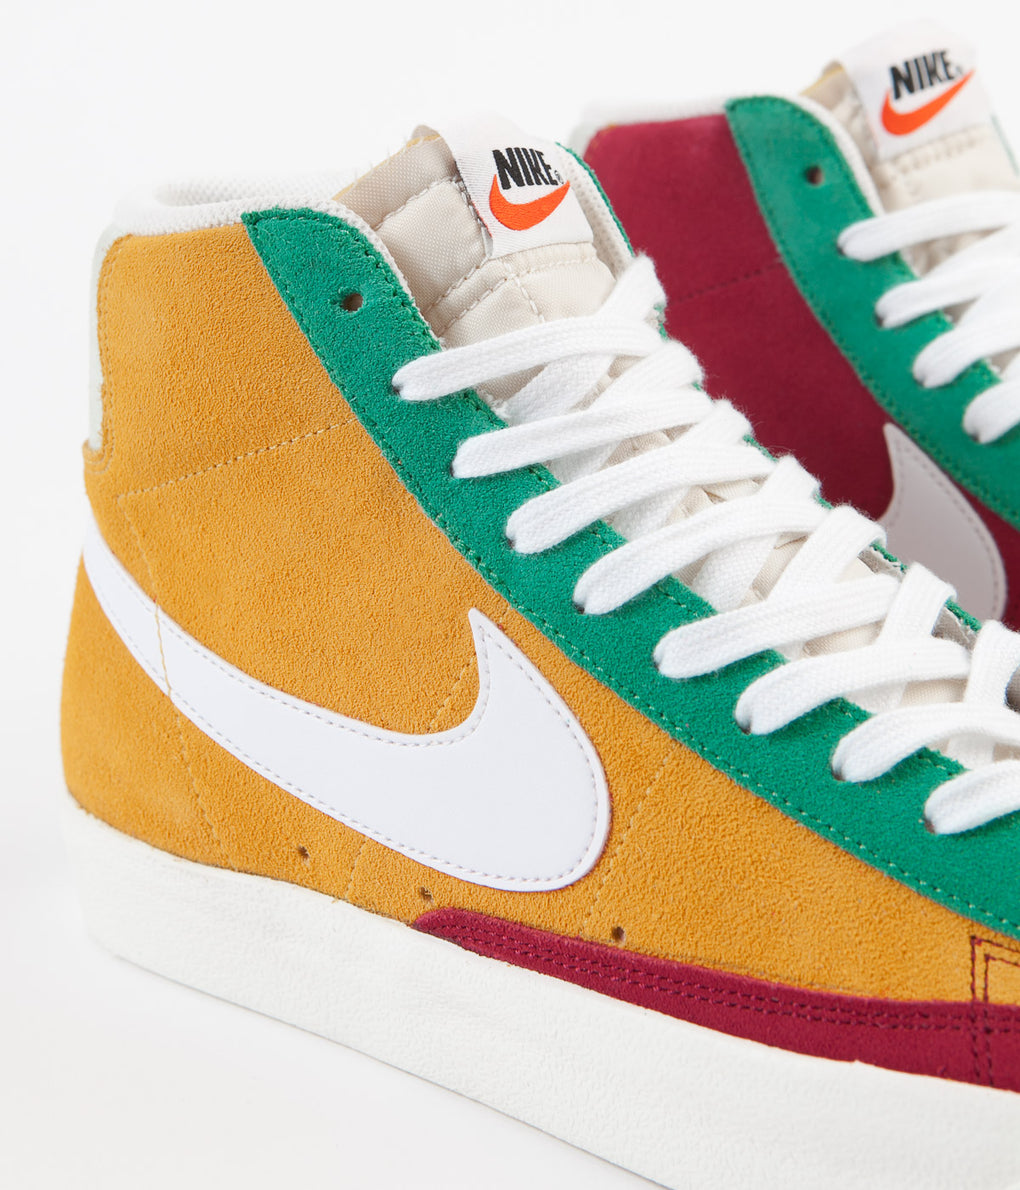 Nike Blazer Mid '77 Vintage Suede Shoes - Noble Red / Kinetic Green - Jade Aura